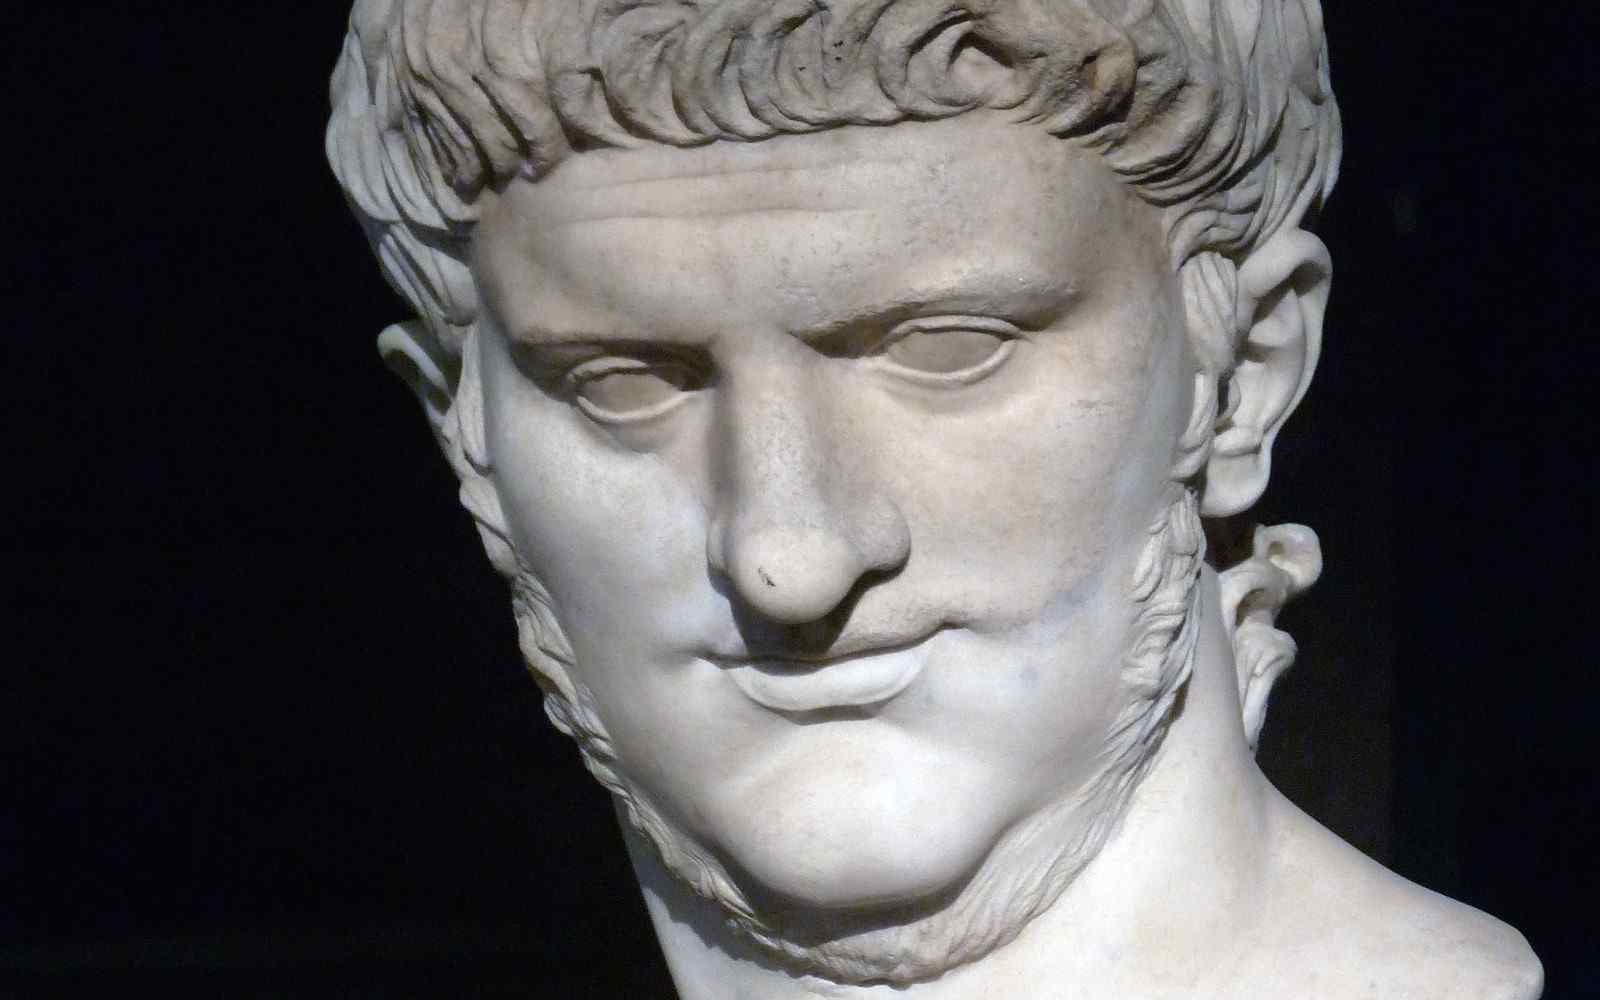 A marble bust of Emperor Nero